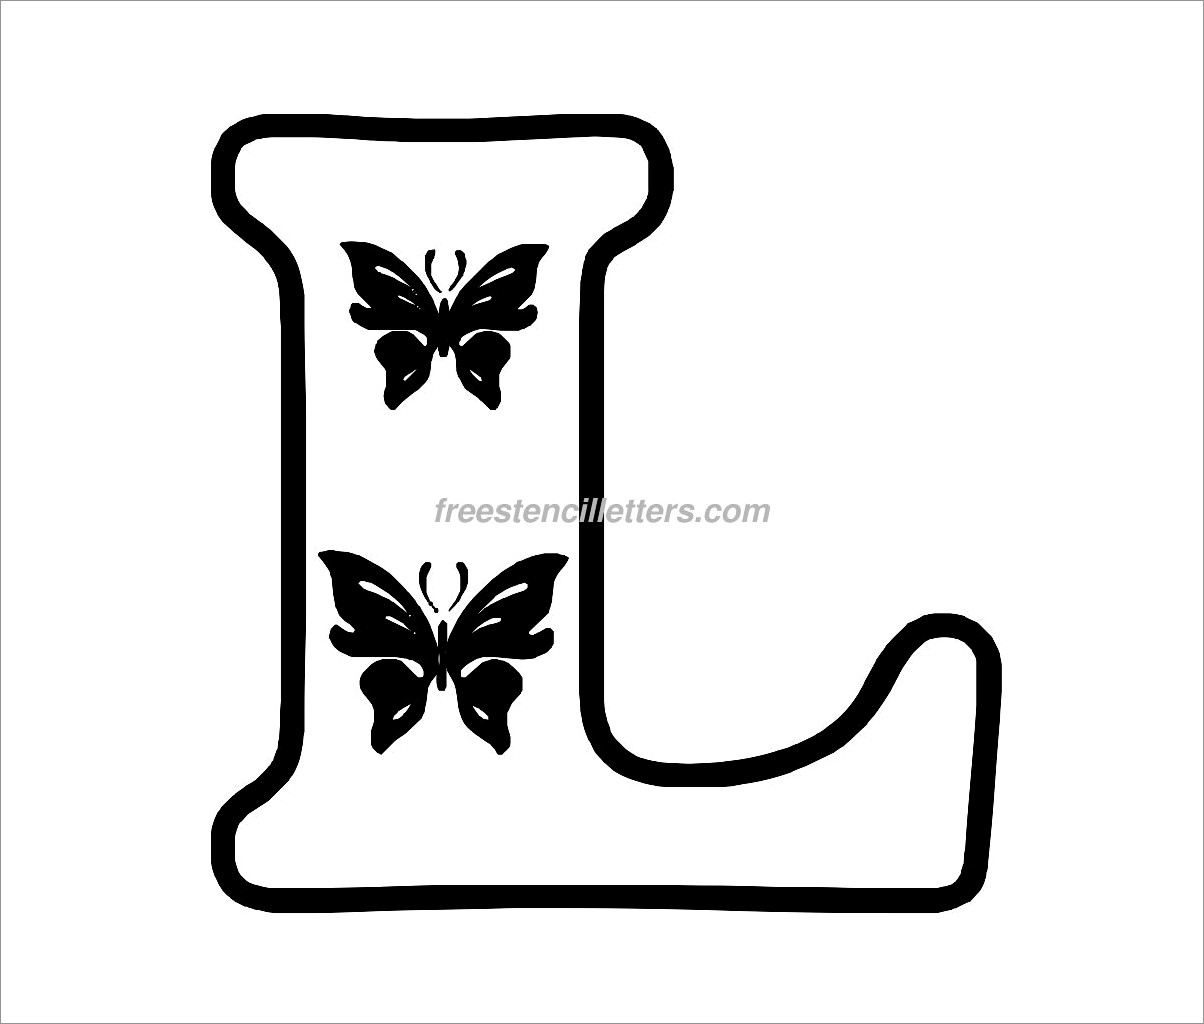 Free Printable Cut Out Letters